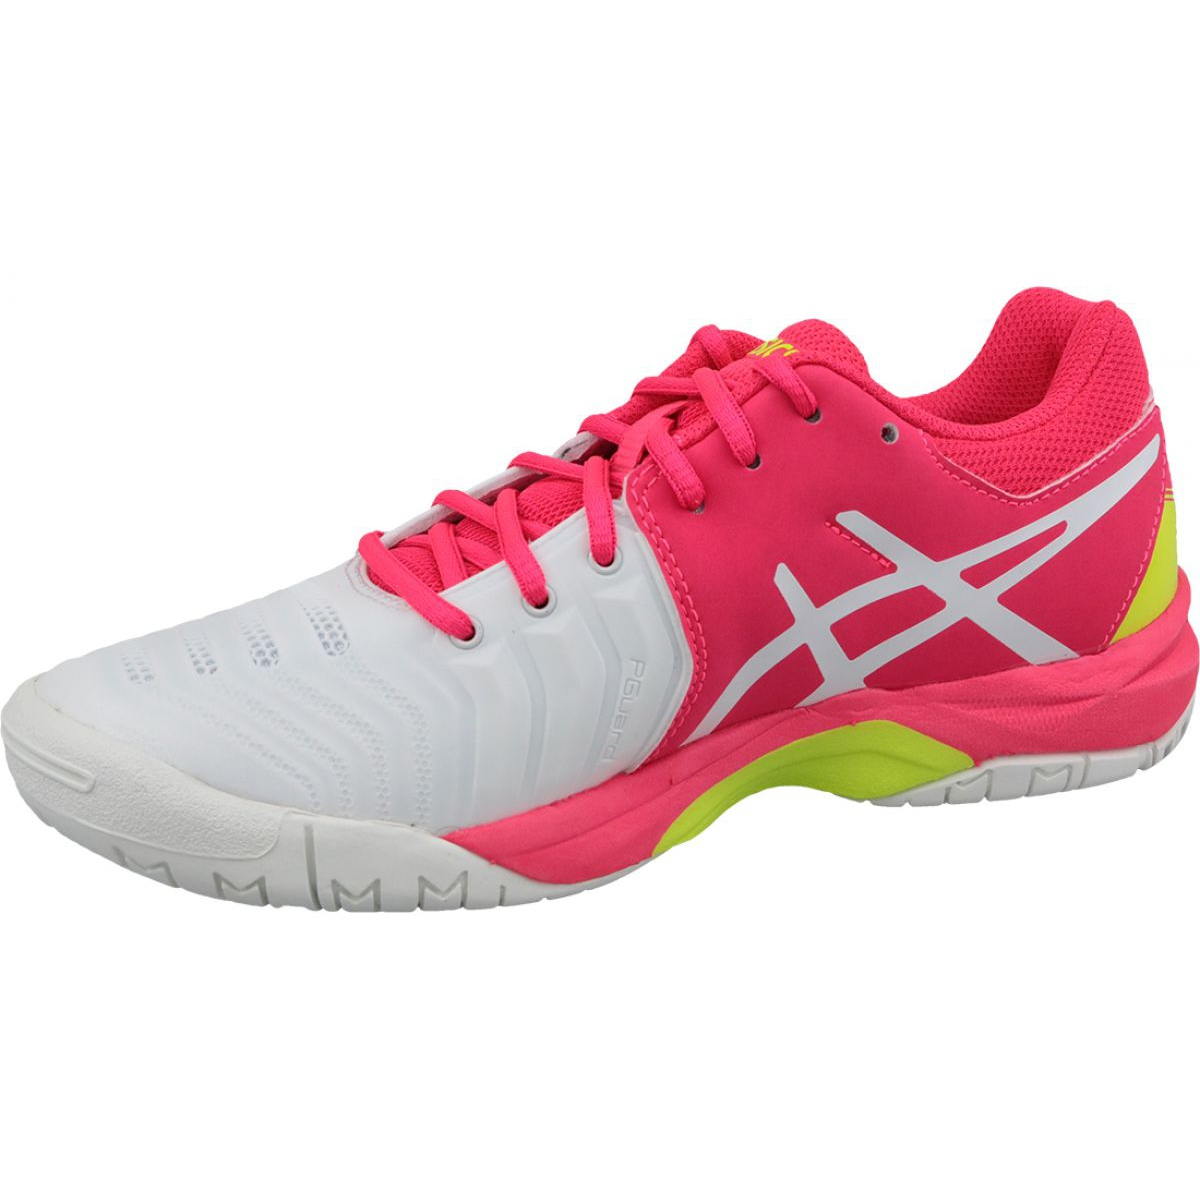 timeless design 87d55 09cd6 Rosa Scarpe da tennis Asics Gel-Resolution 7 Gs Jr C700Y-116